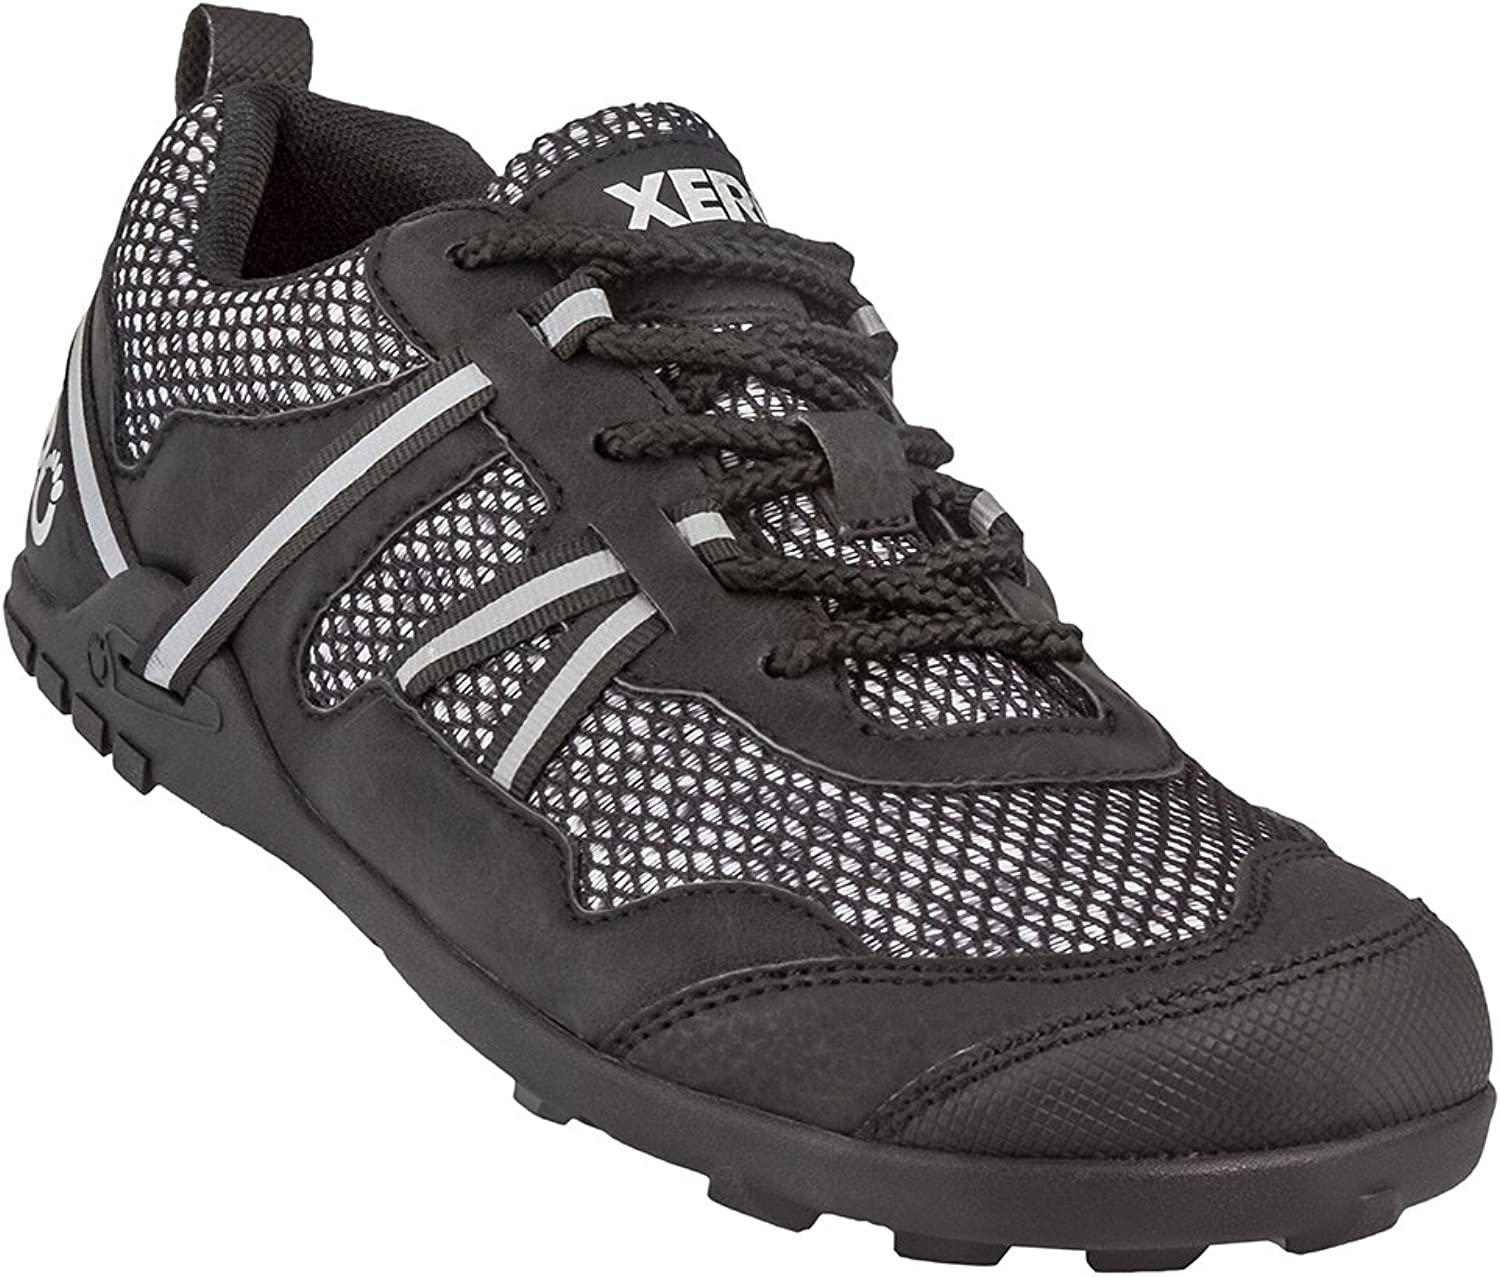 Xero Shoes TerraFlex – Men s Trail Running and Hiking Shoe – Barefoot-Inspired Minimalist Lightweight Zero-Drop